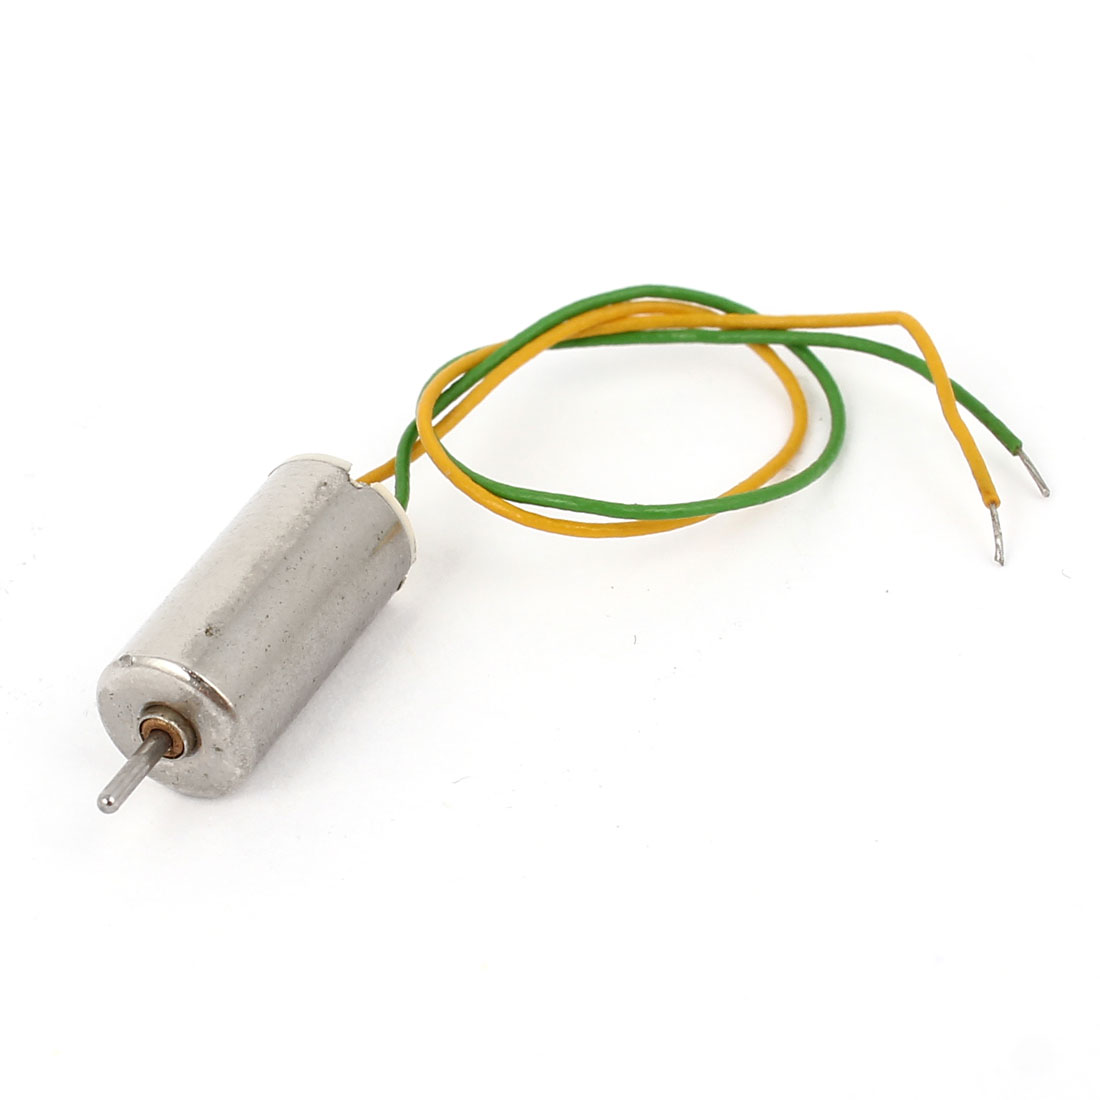 Model Aircraft Magnet DC Coreless Motor 0.8mm Shaft 1.5-4.5V 30000RPM